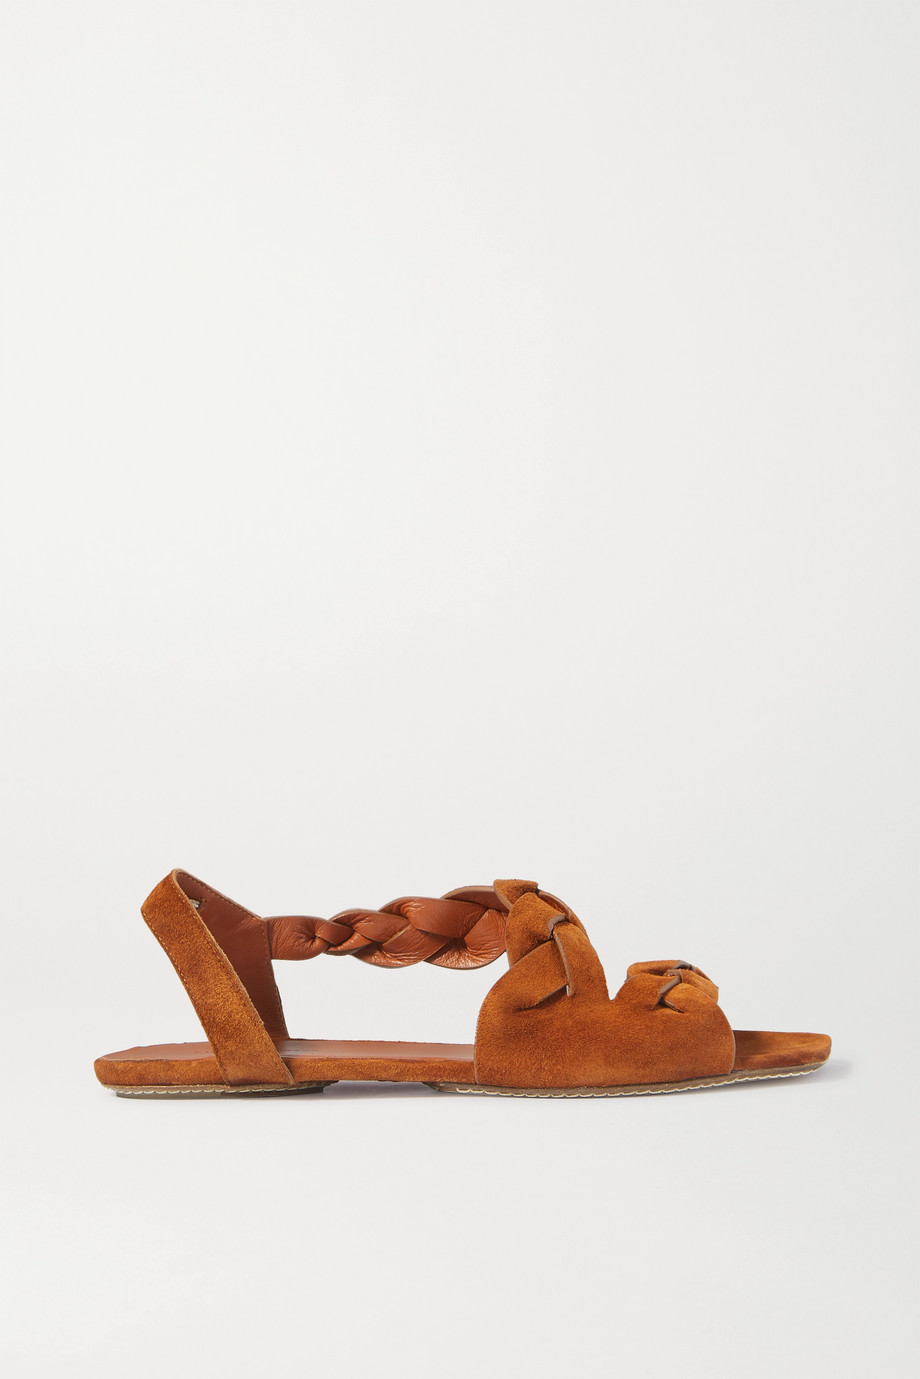 Khaite Braided suede sandals